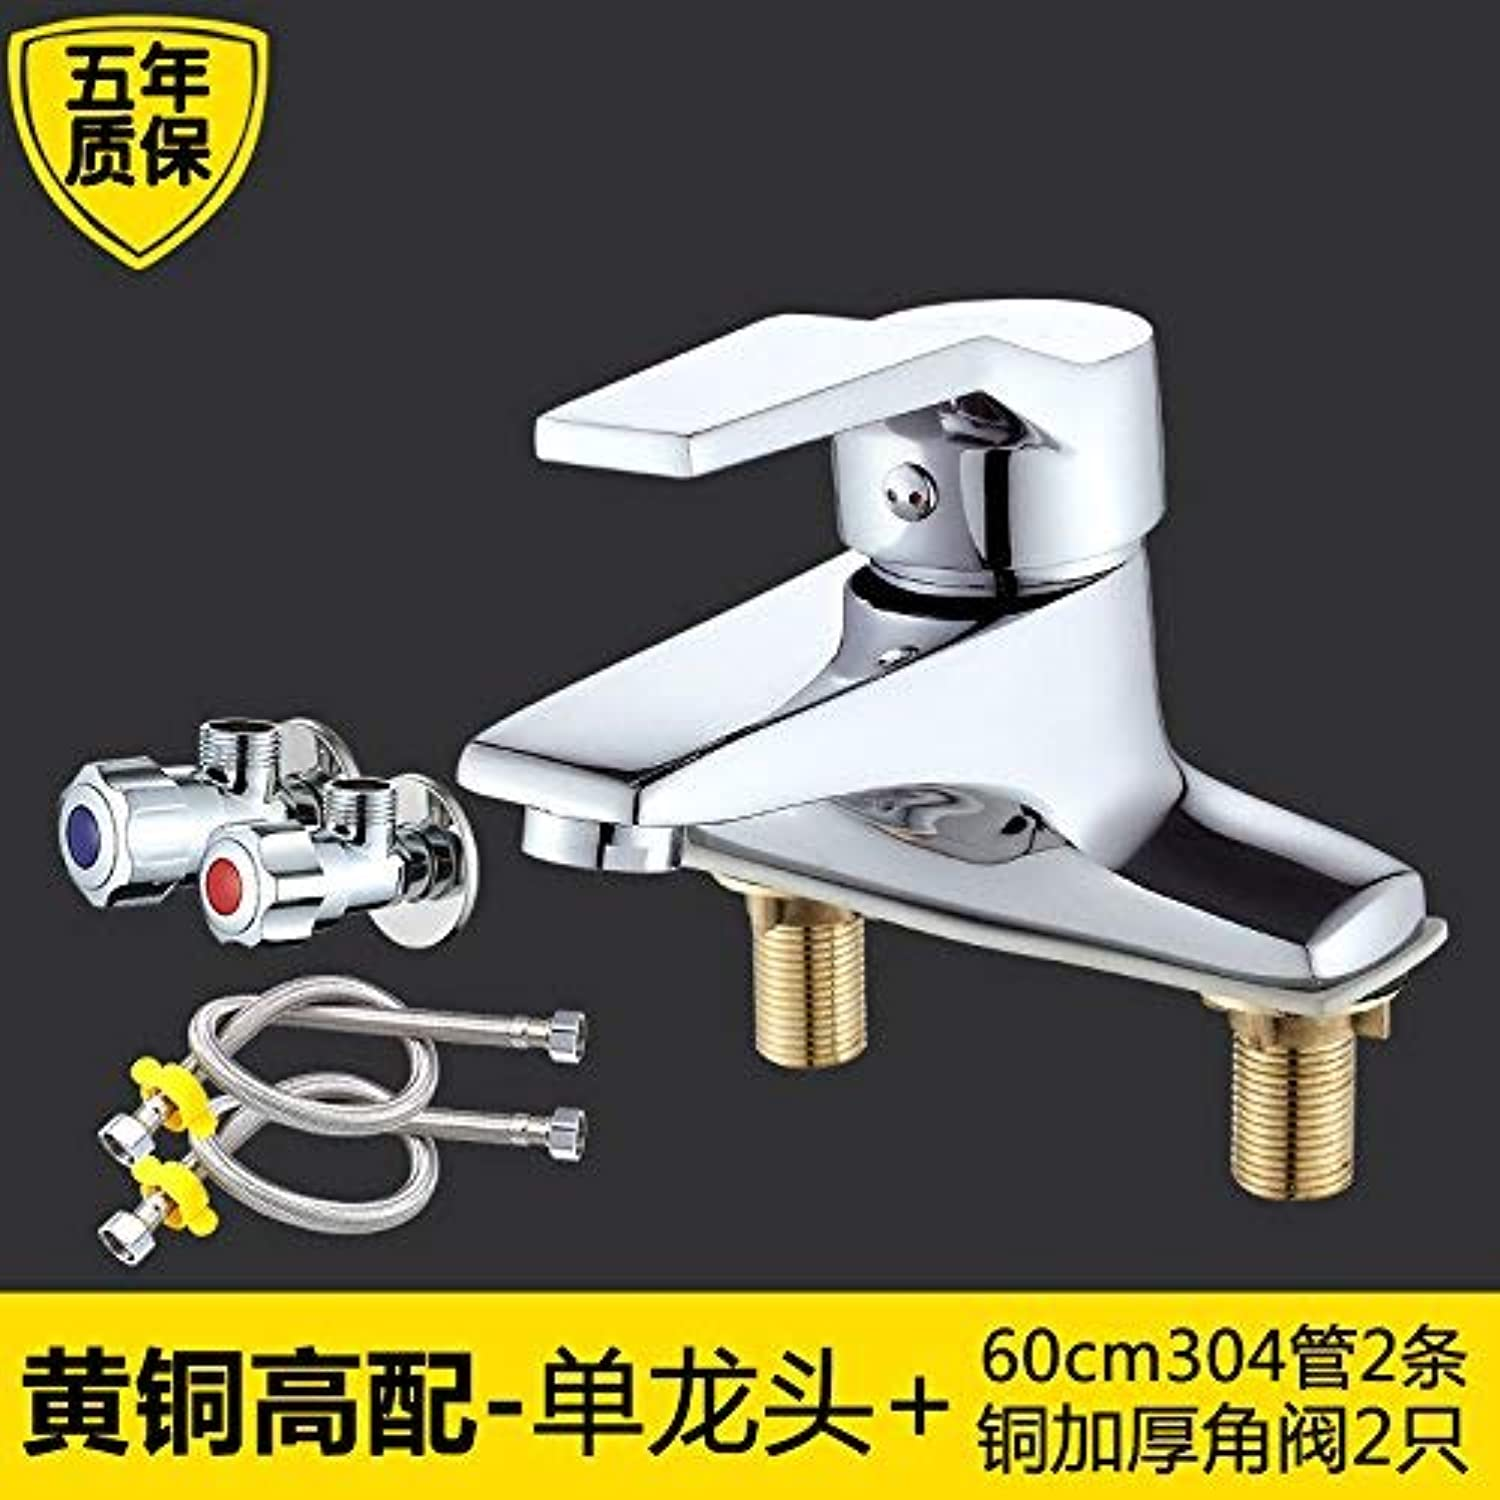 Oudan The brass body faucet hot and cold basin basin Two holes basin three hole basin faucet bathroom faucets, copper, steel pipes with high +60cm304 + Copper Angle Valve